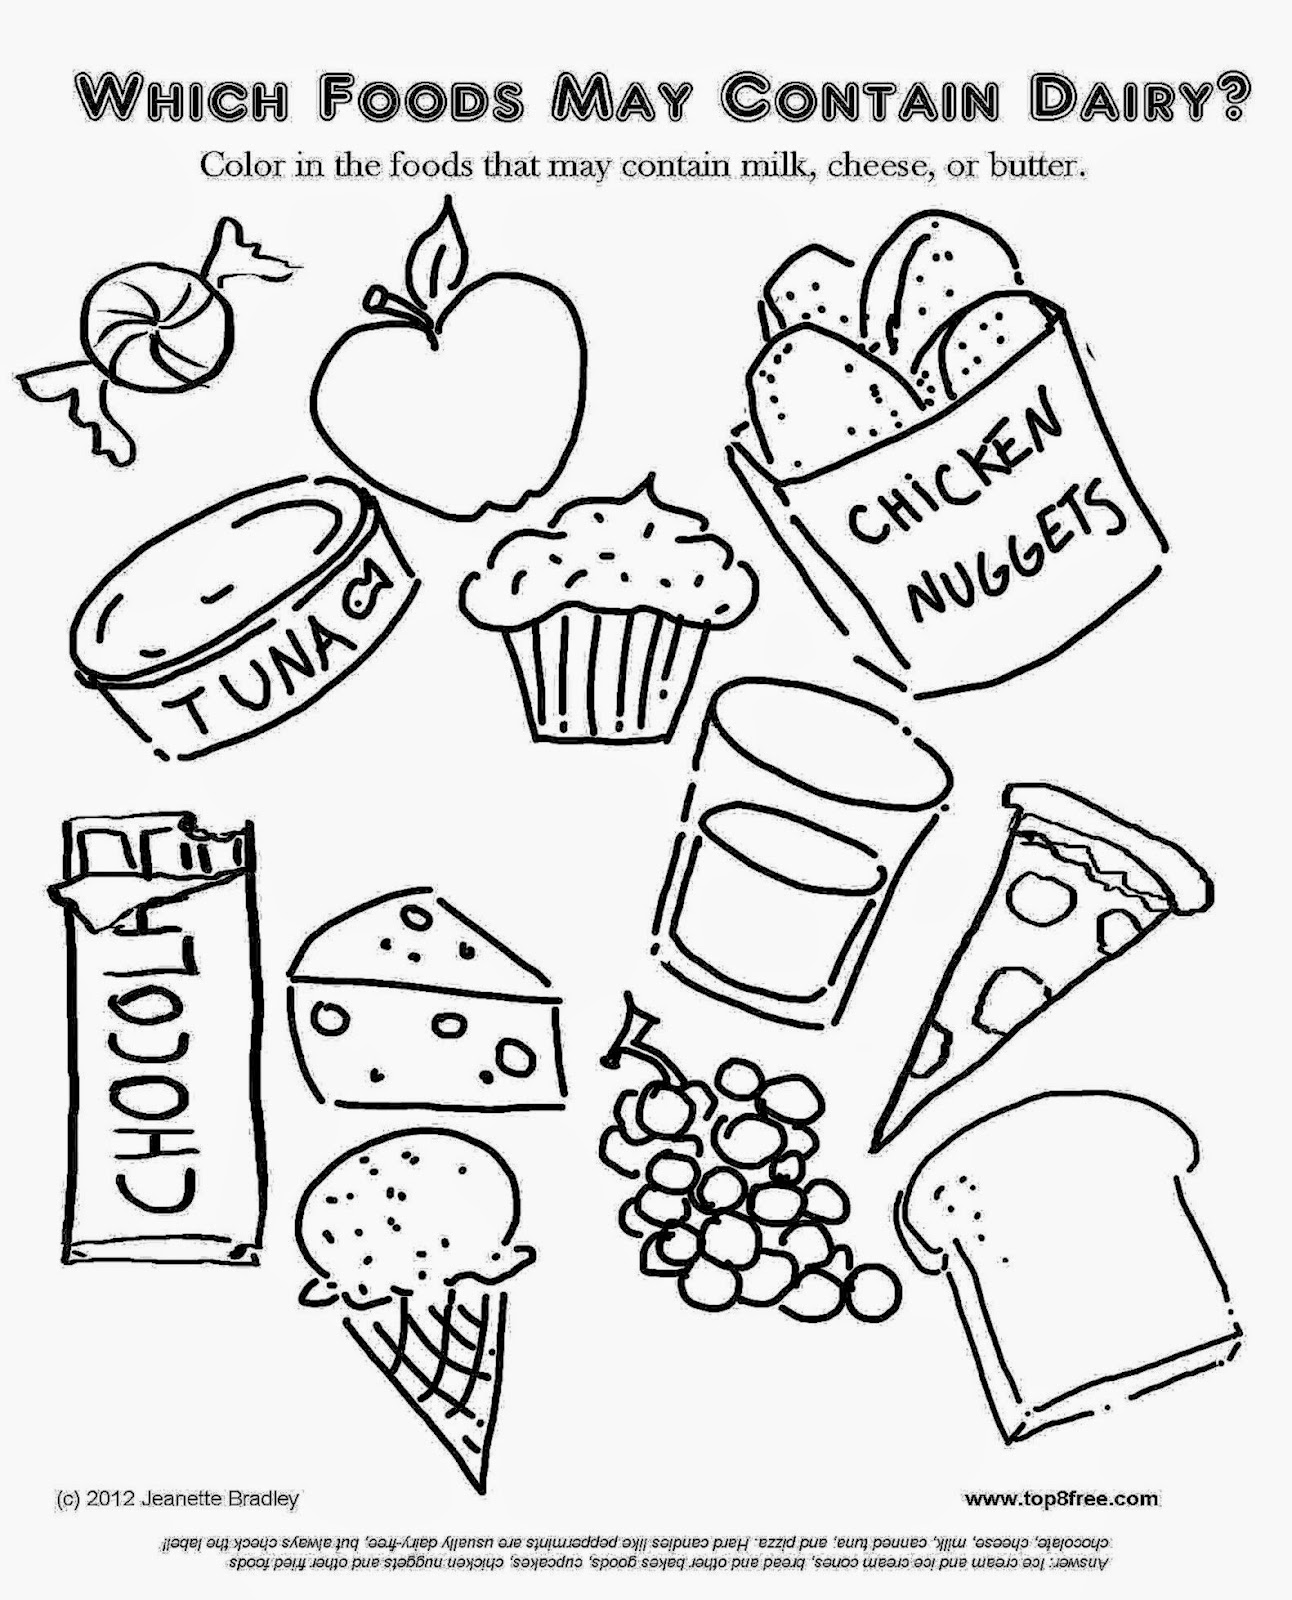 Dairy allergy coloring page top eight free your food allergy